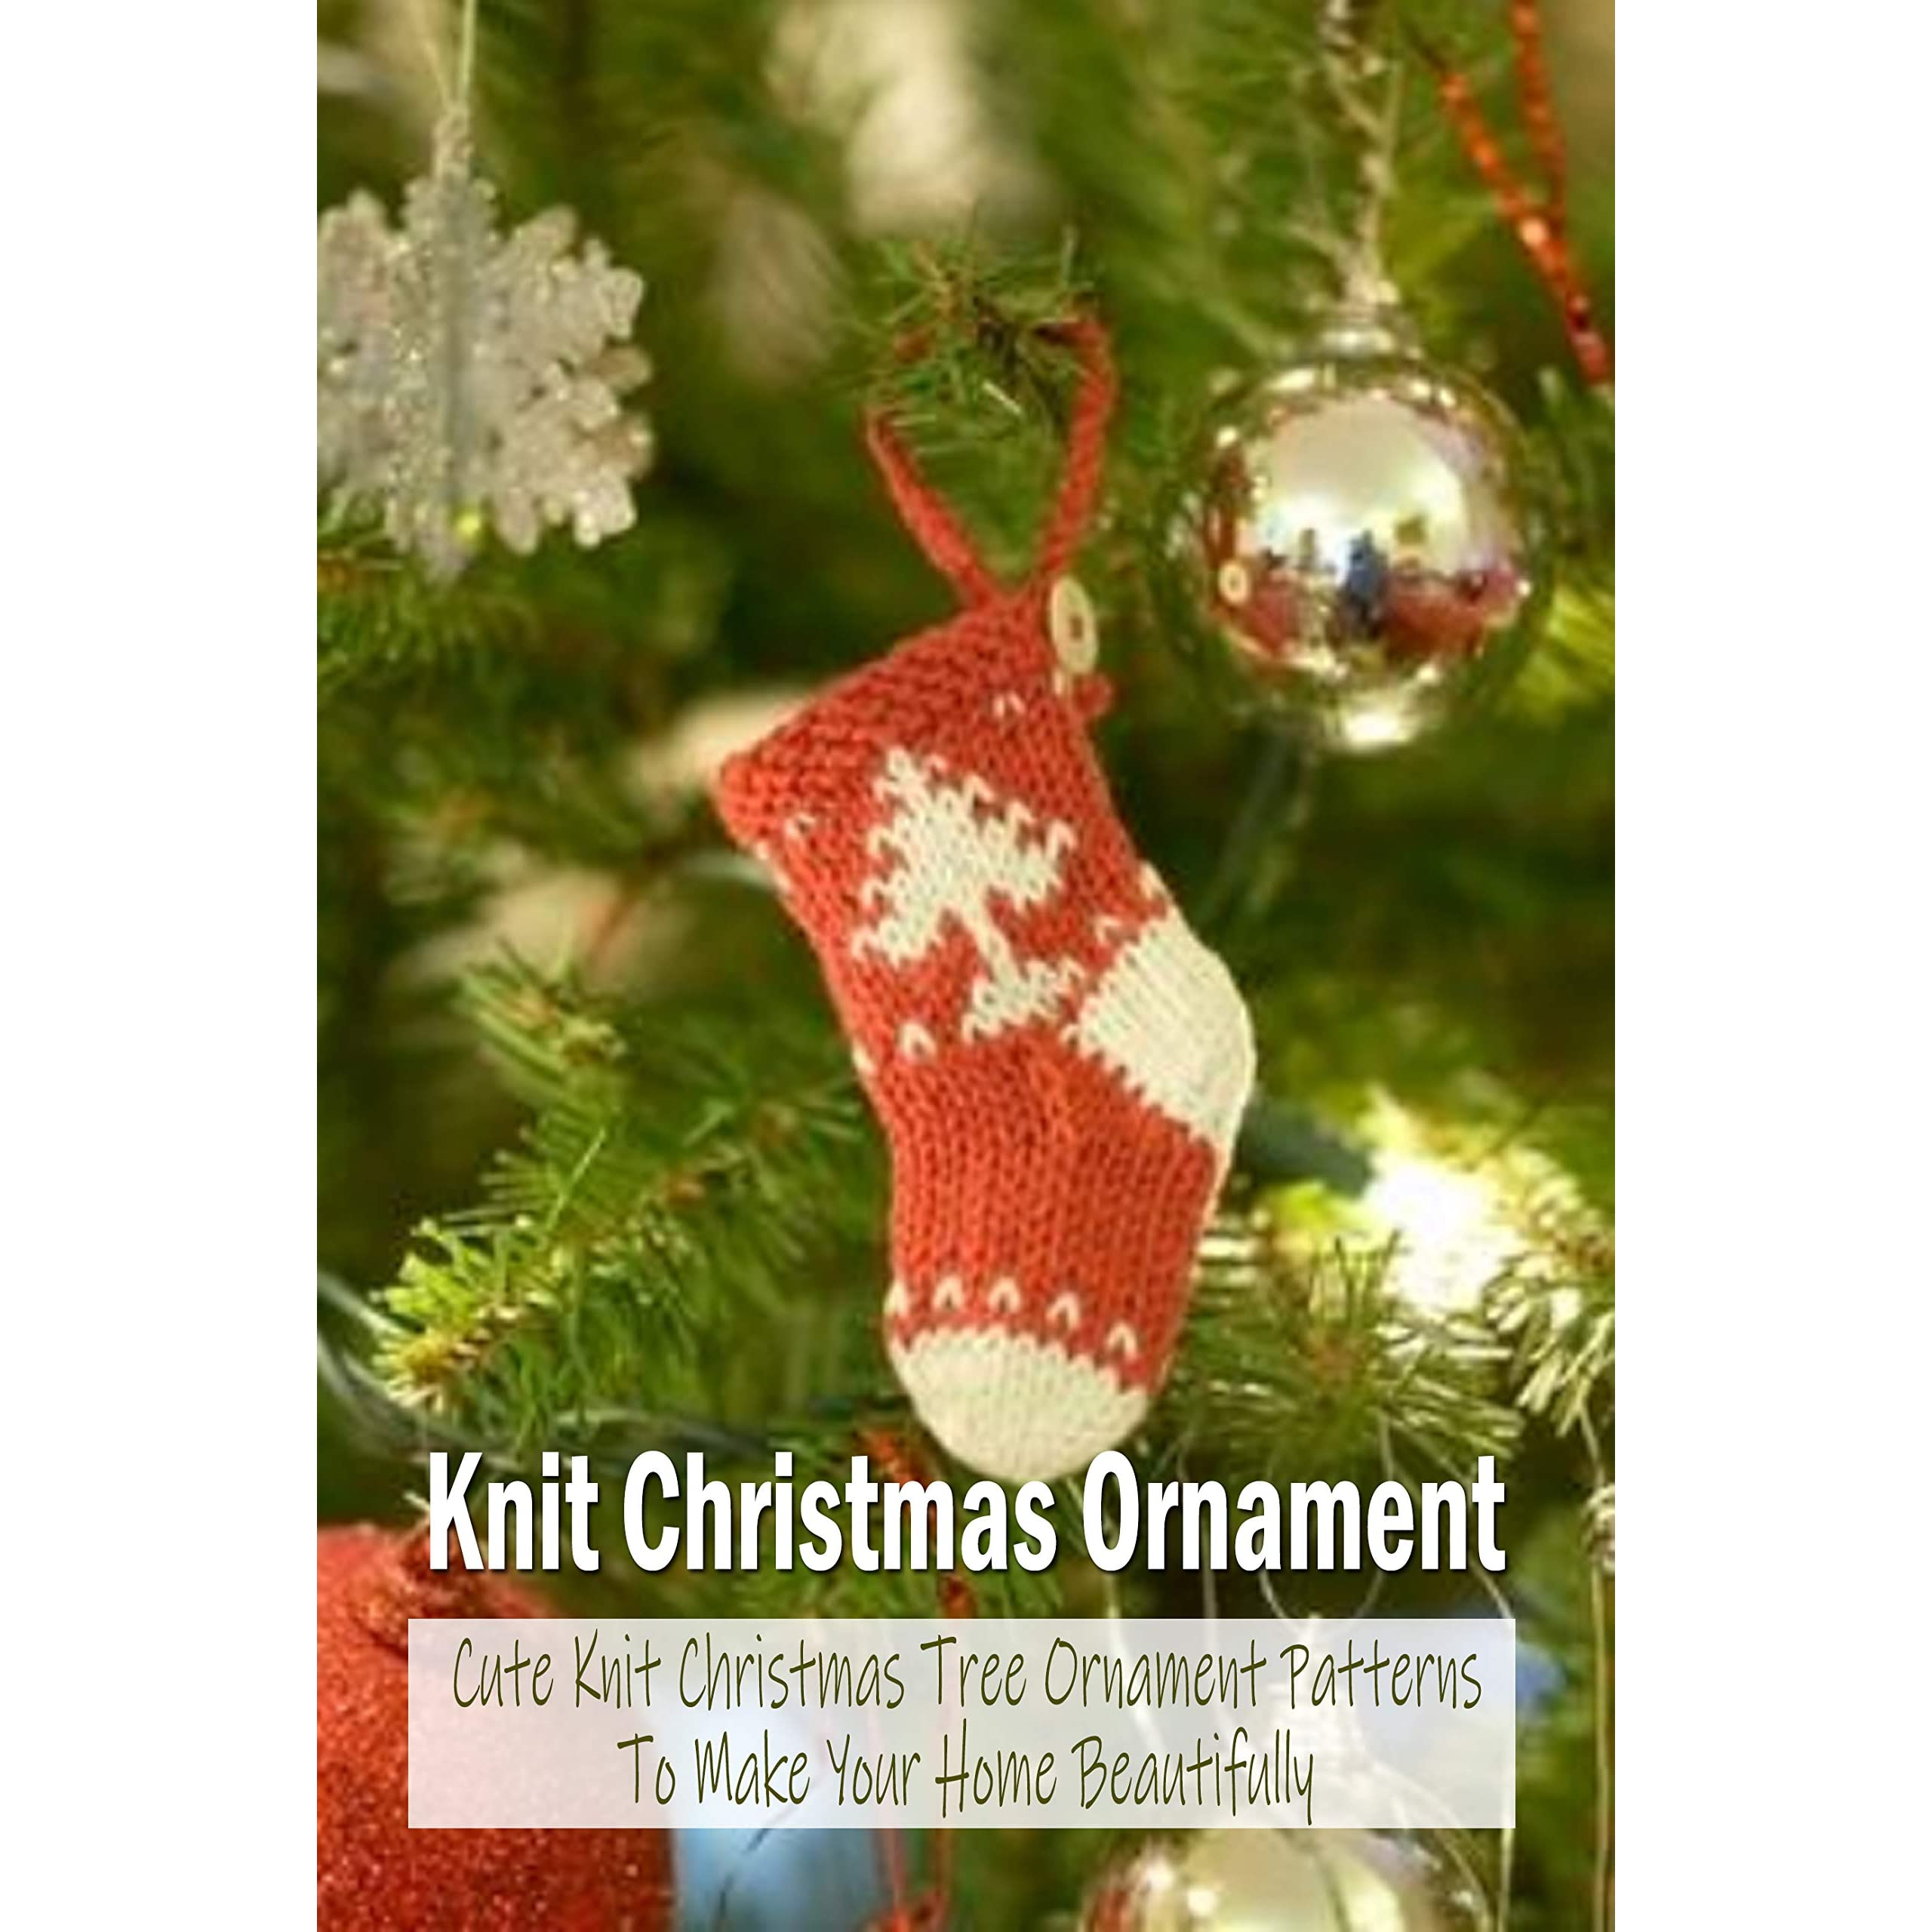 Knit Christmas Ornament Cute Knit Christmas Tree Ornament Patterns To Make Your Home Beautifully Amigurumi Knit Christmas Ornament By Patricia Robinson